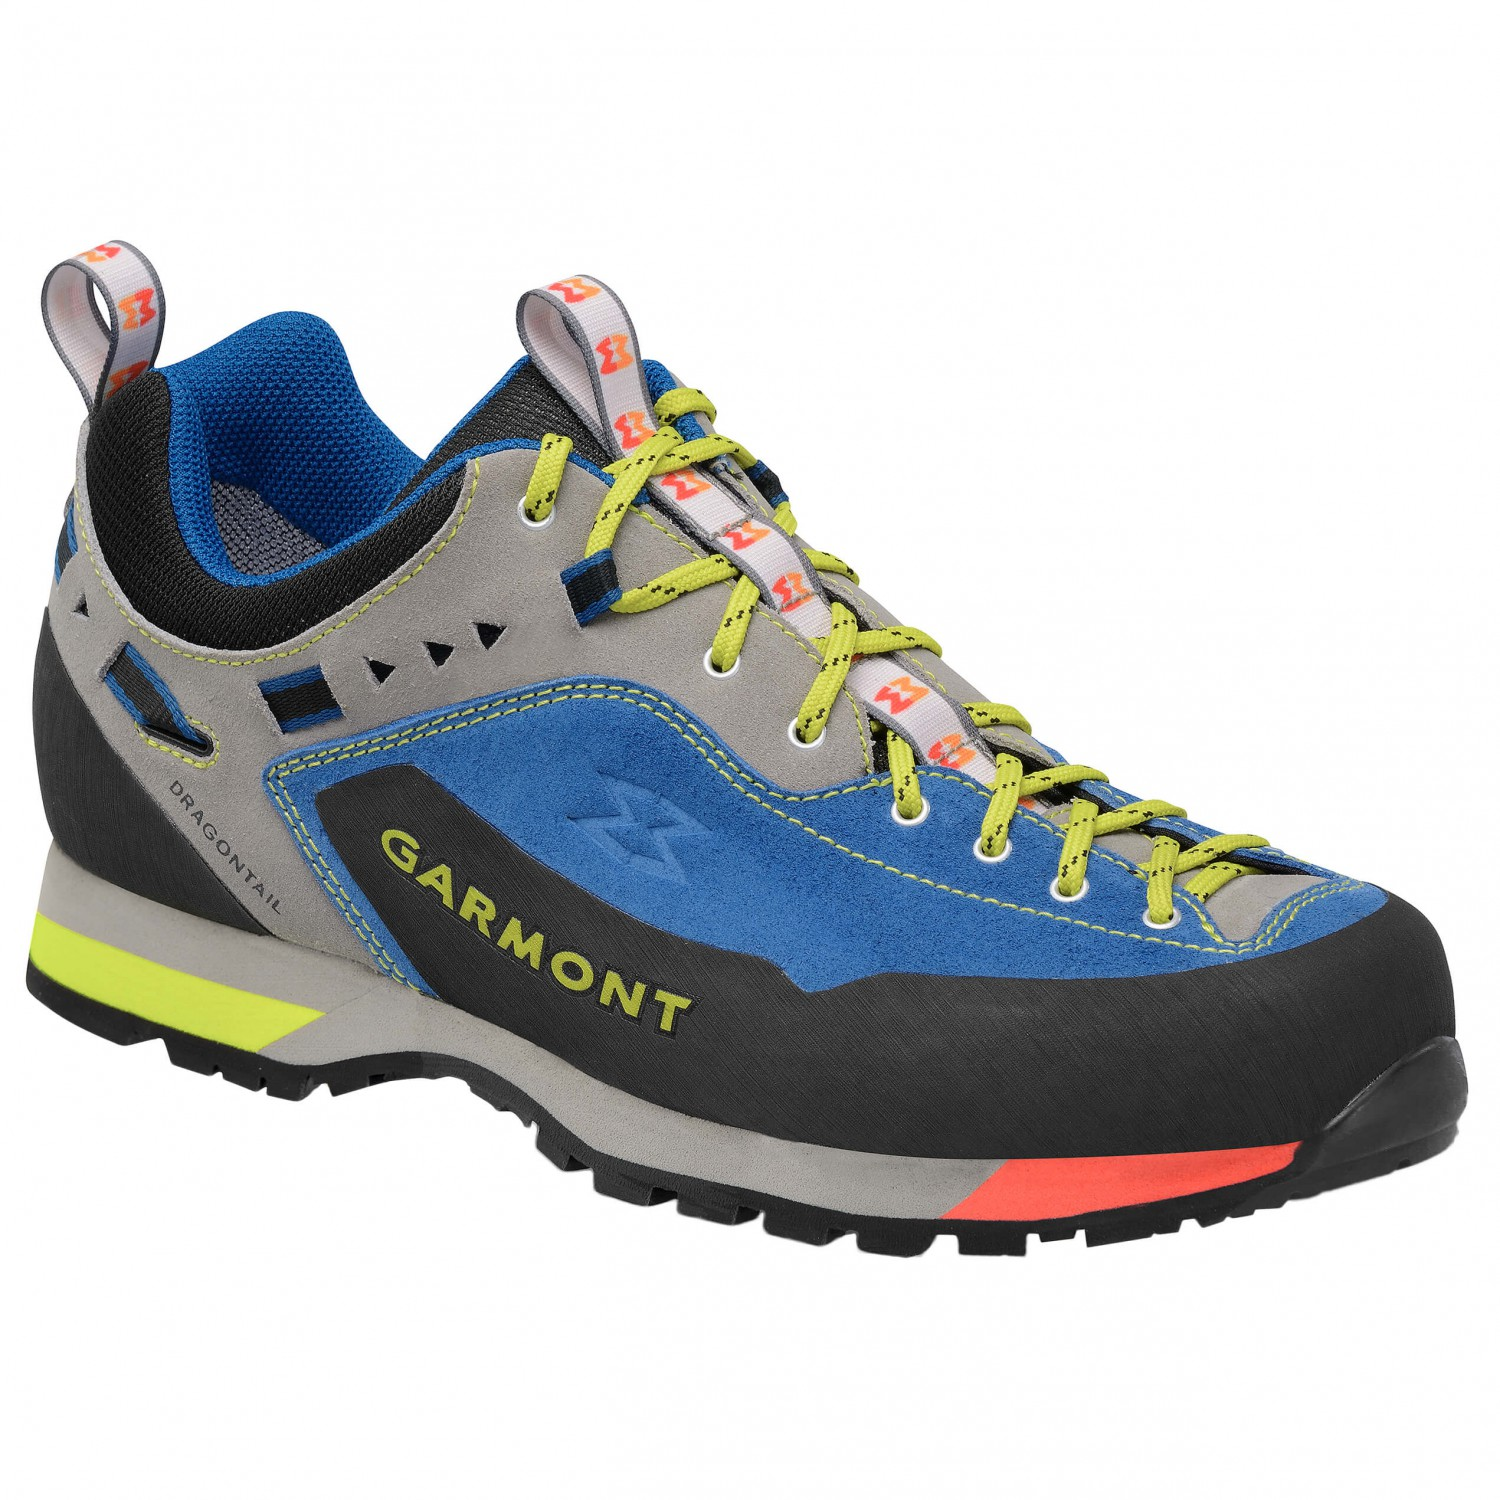 Garmont - Dragontail LT - Approachschuhe Cobalto / Ciment